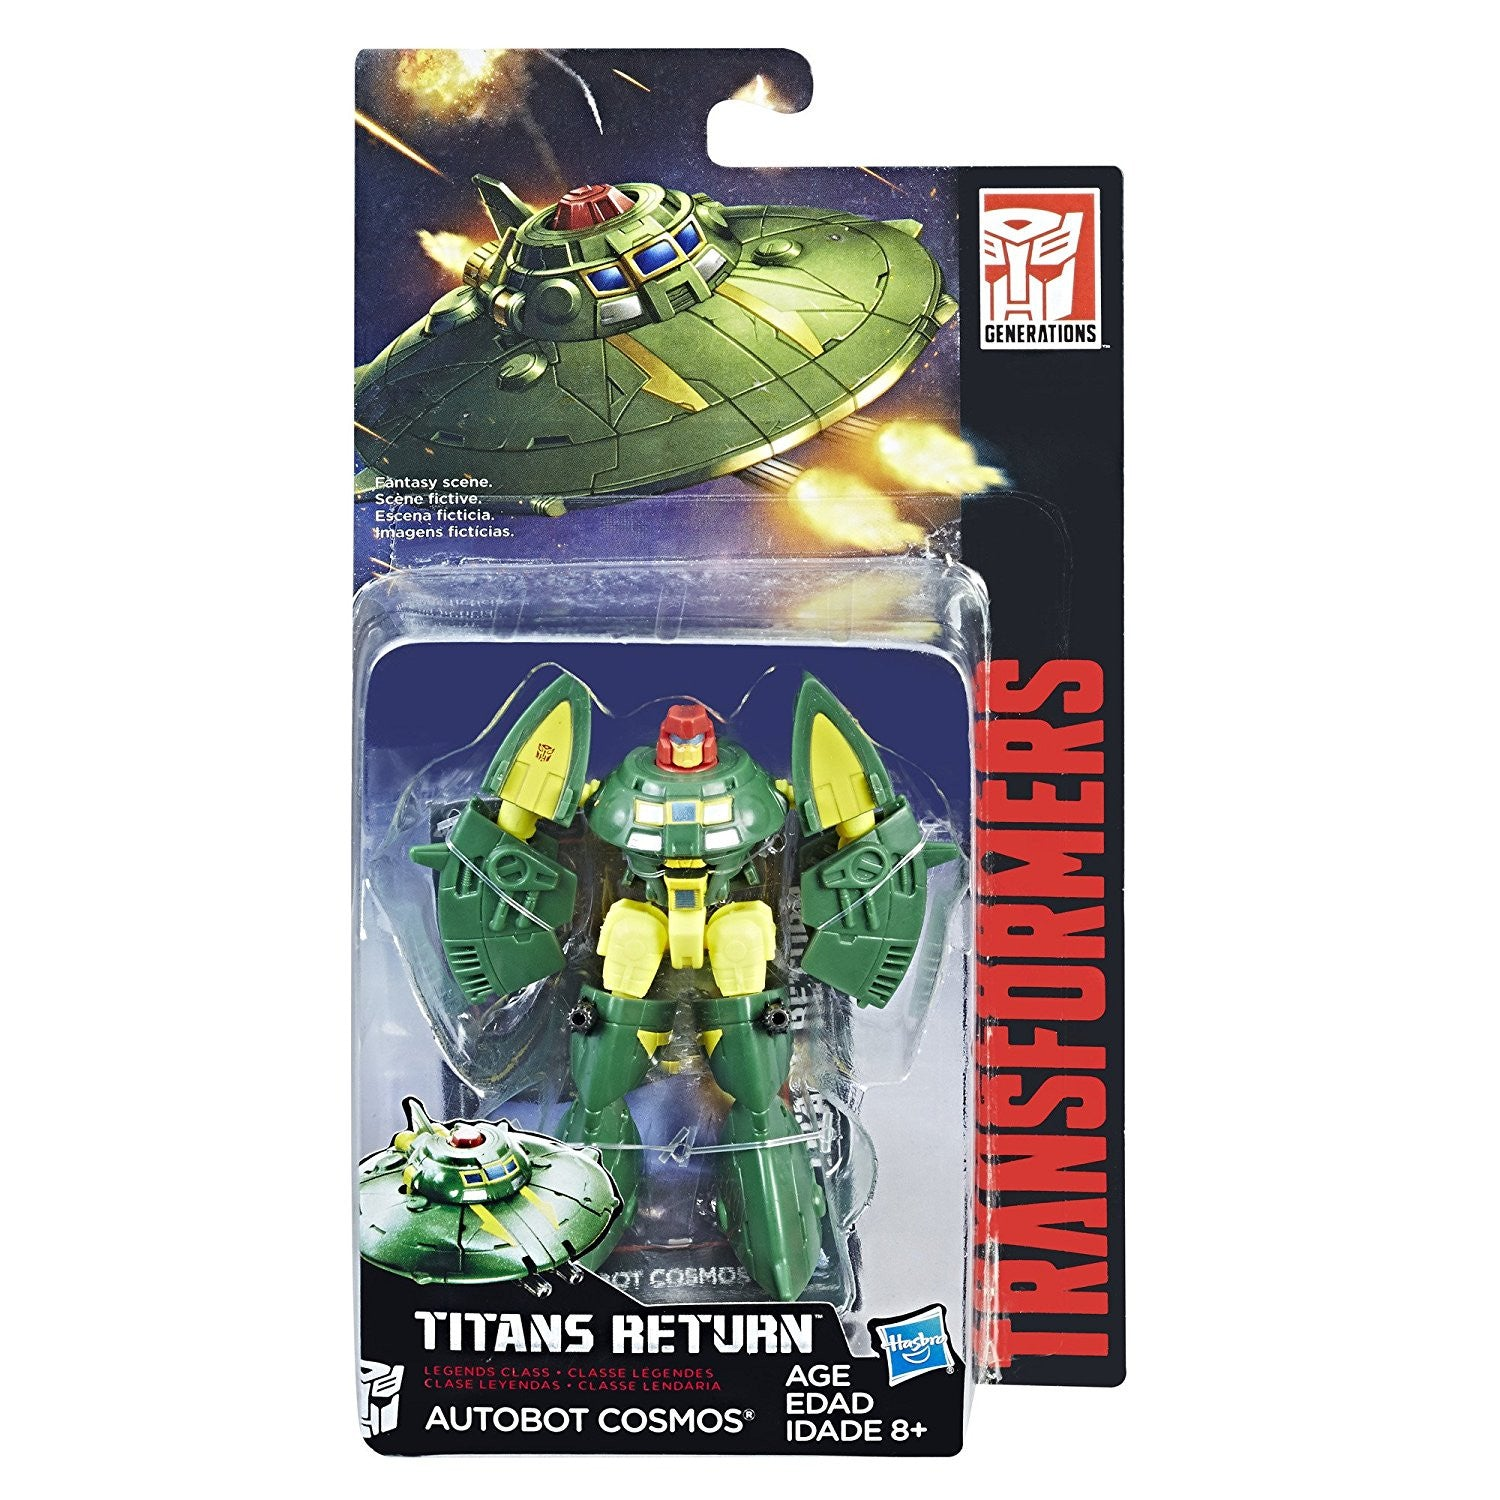 Cosmos Transformers Generations Titans Return Legends Class